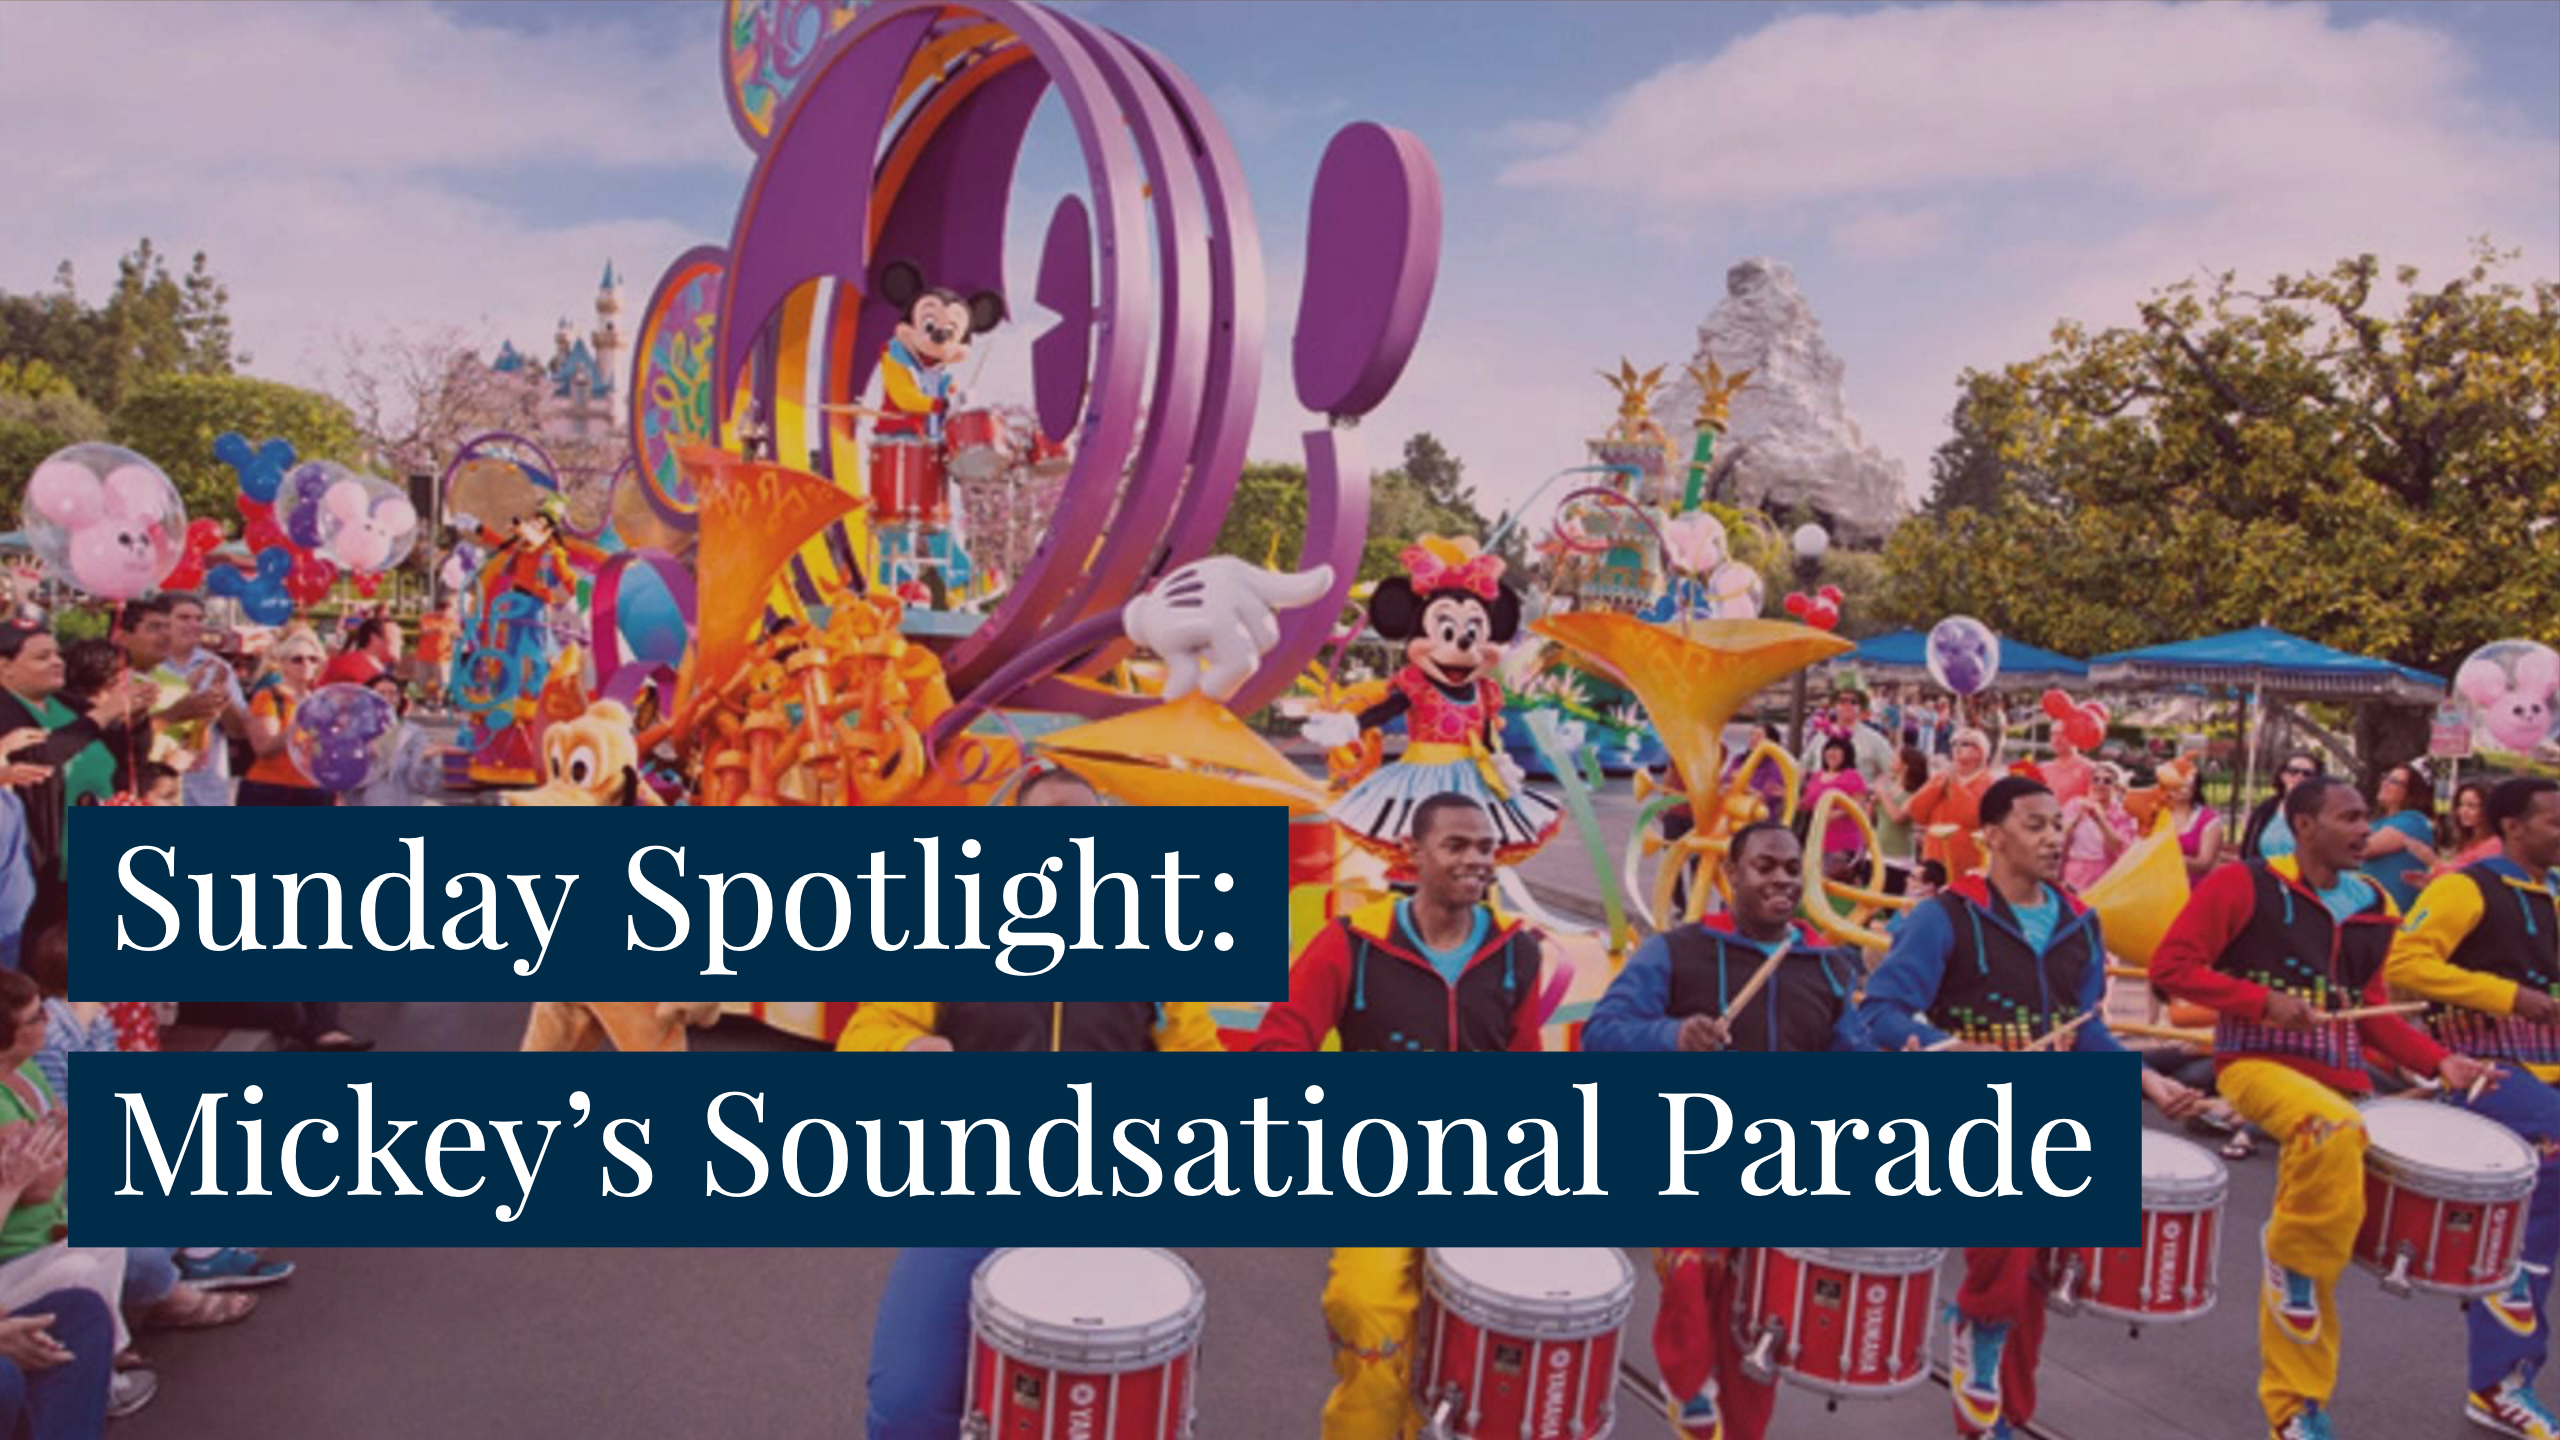 Sunday Spotlight: Mickey's Soundsational Parade